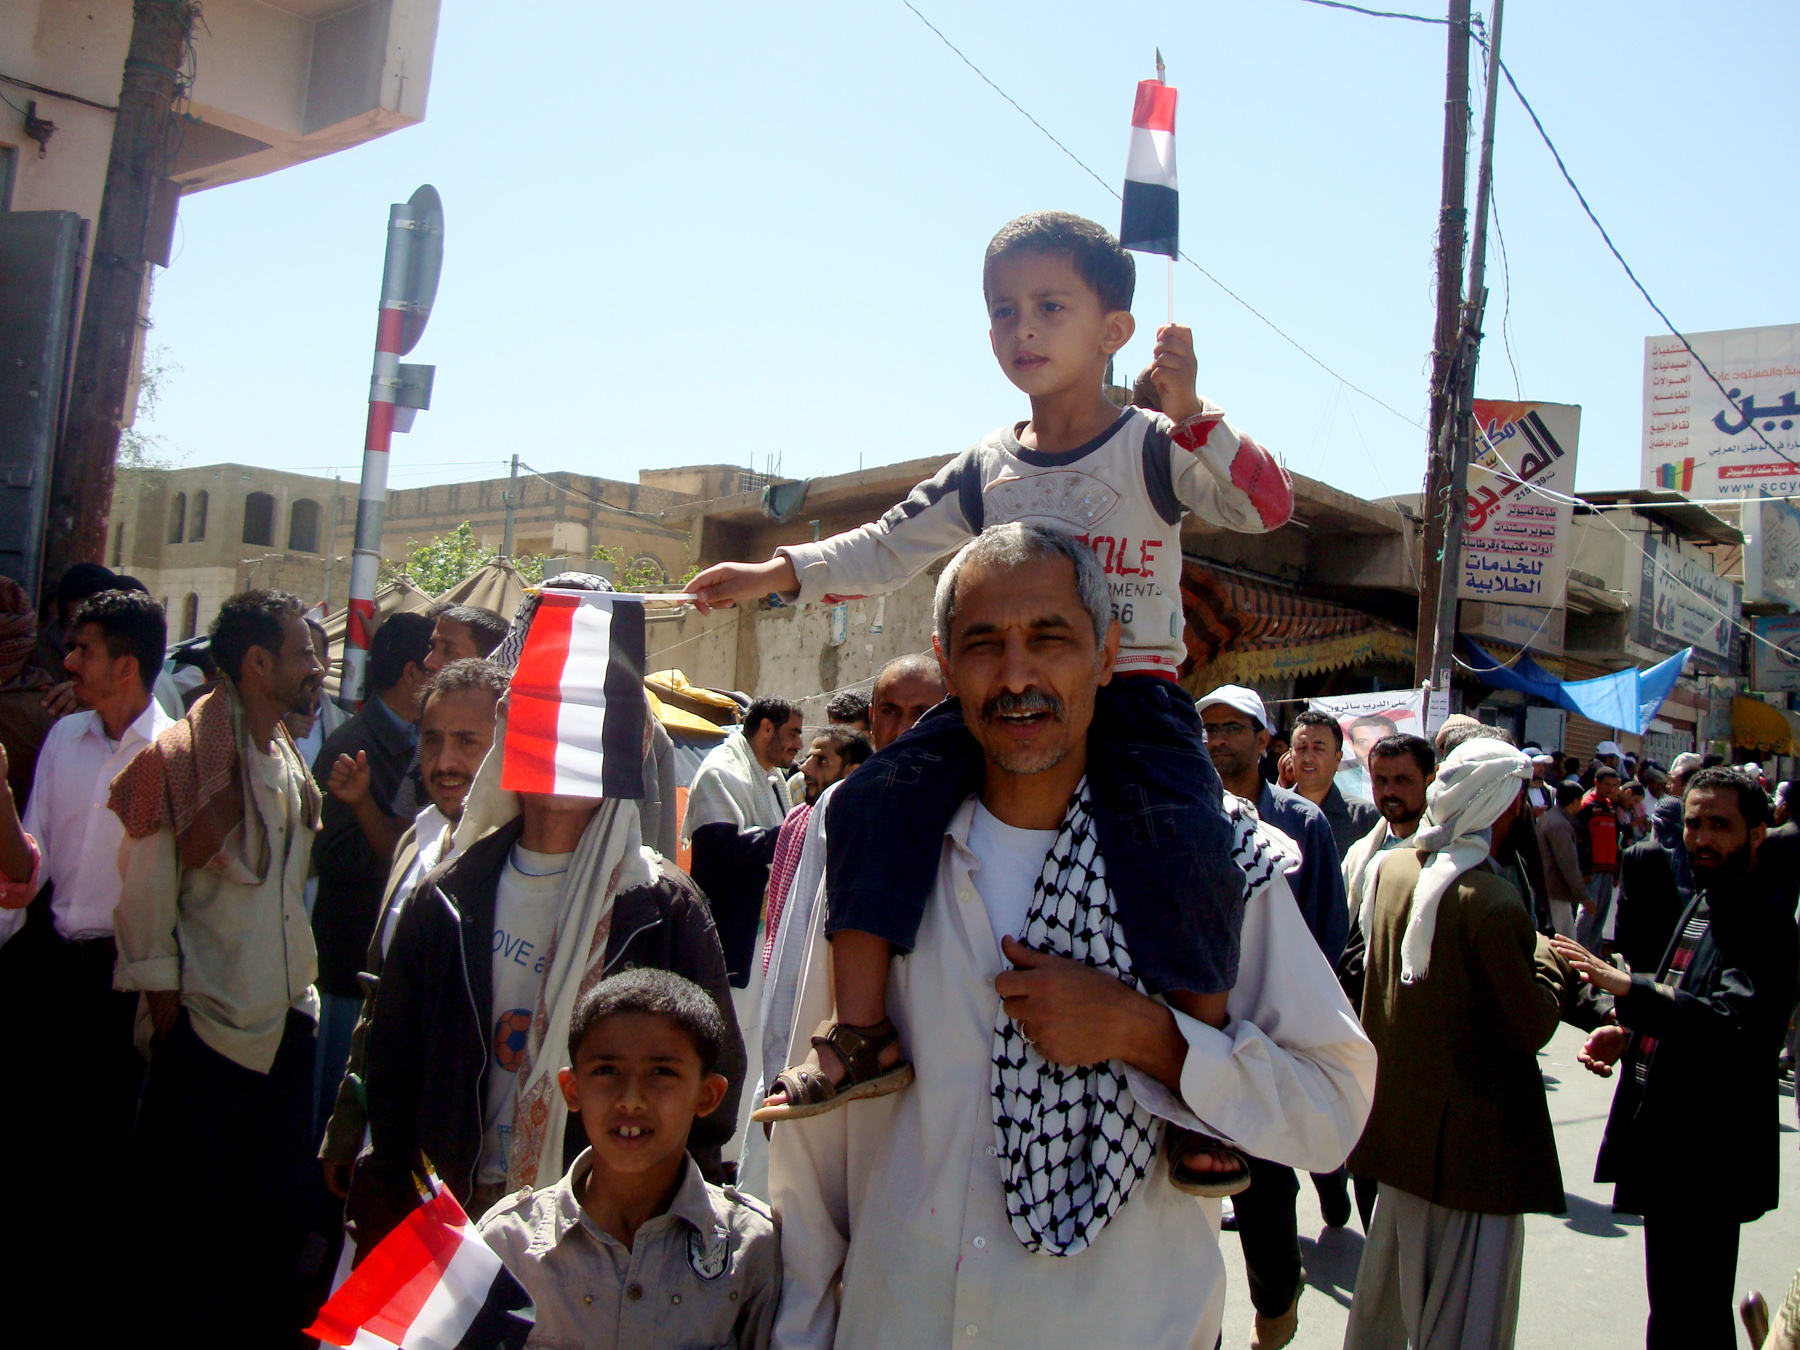 Protesters in Yemen. Some local NGOs see that engaging children in demonstrations is a violation of their rights